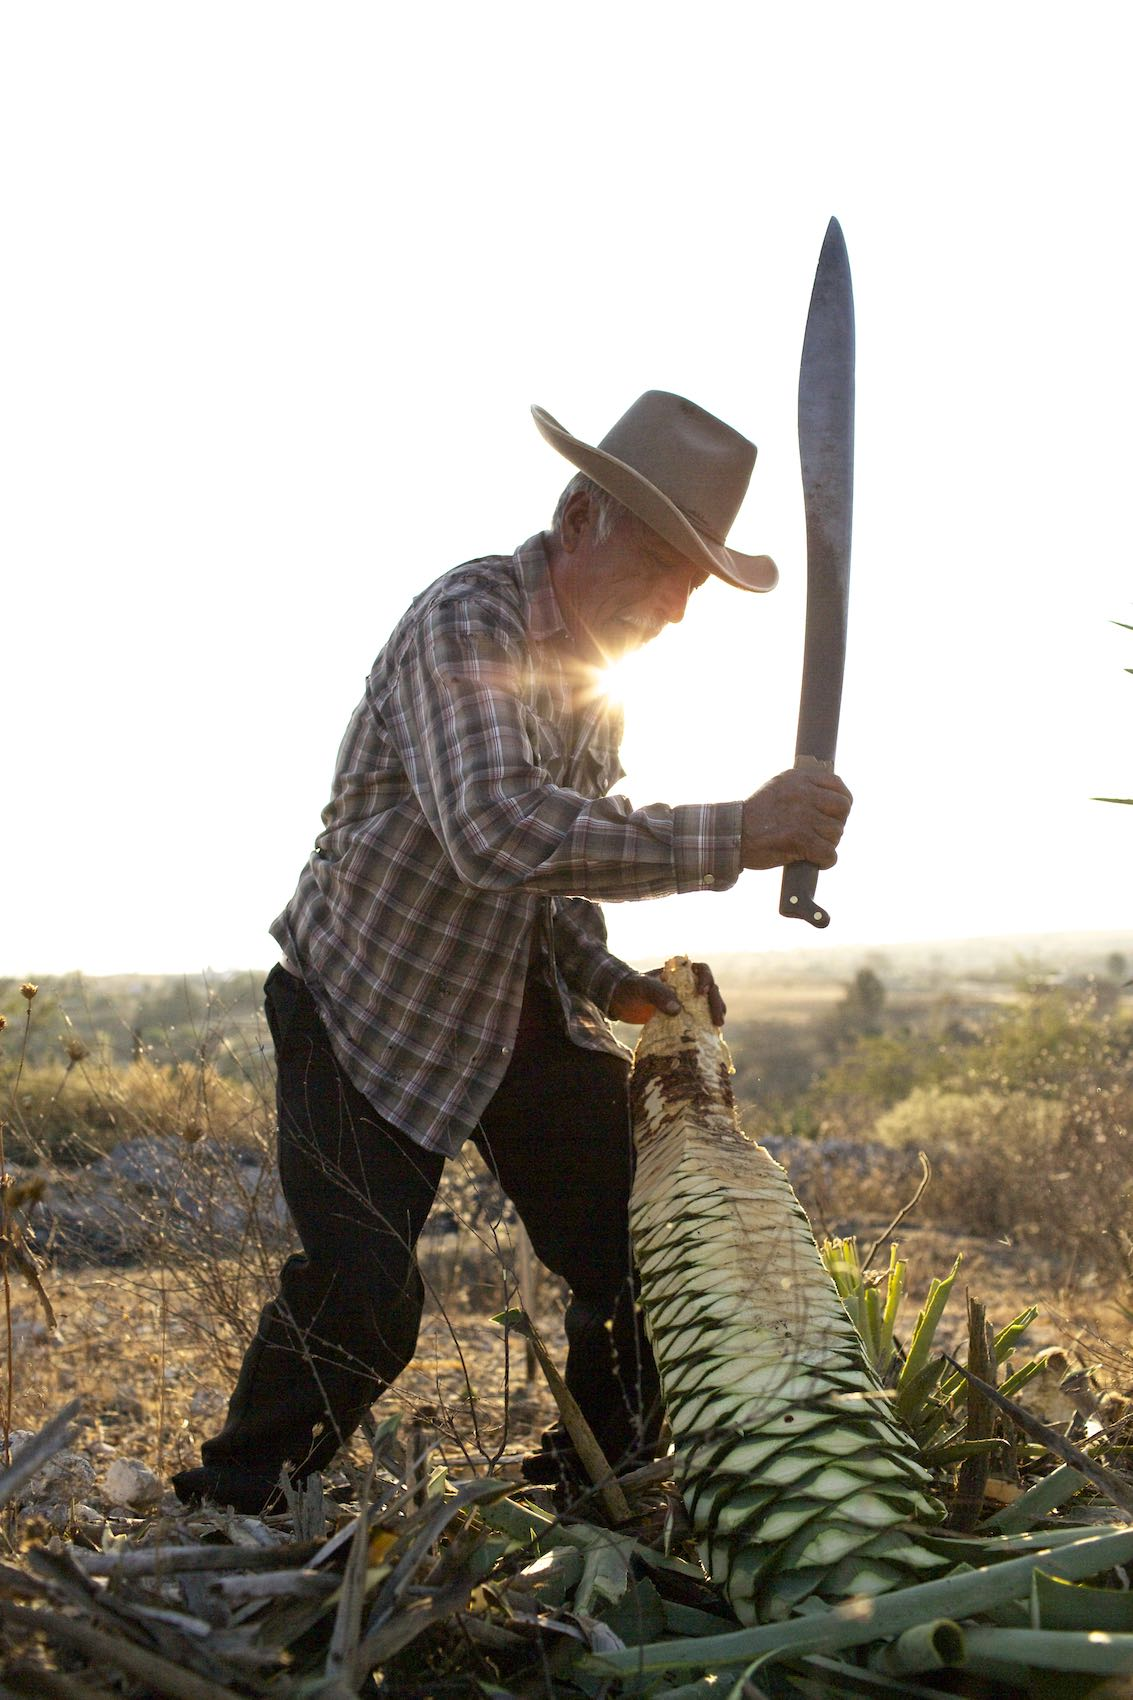 Jody Horton Photography - Mezcal harvest with machete shot for Garden & Gun.